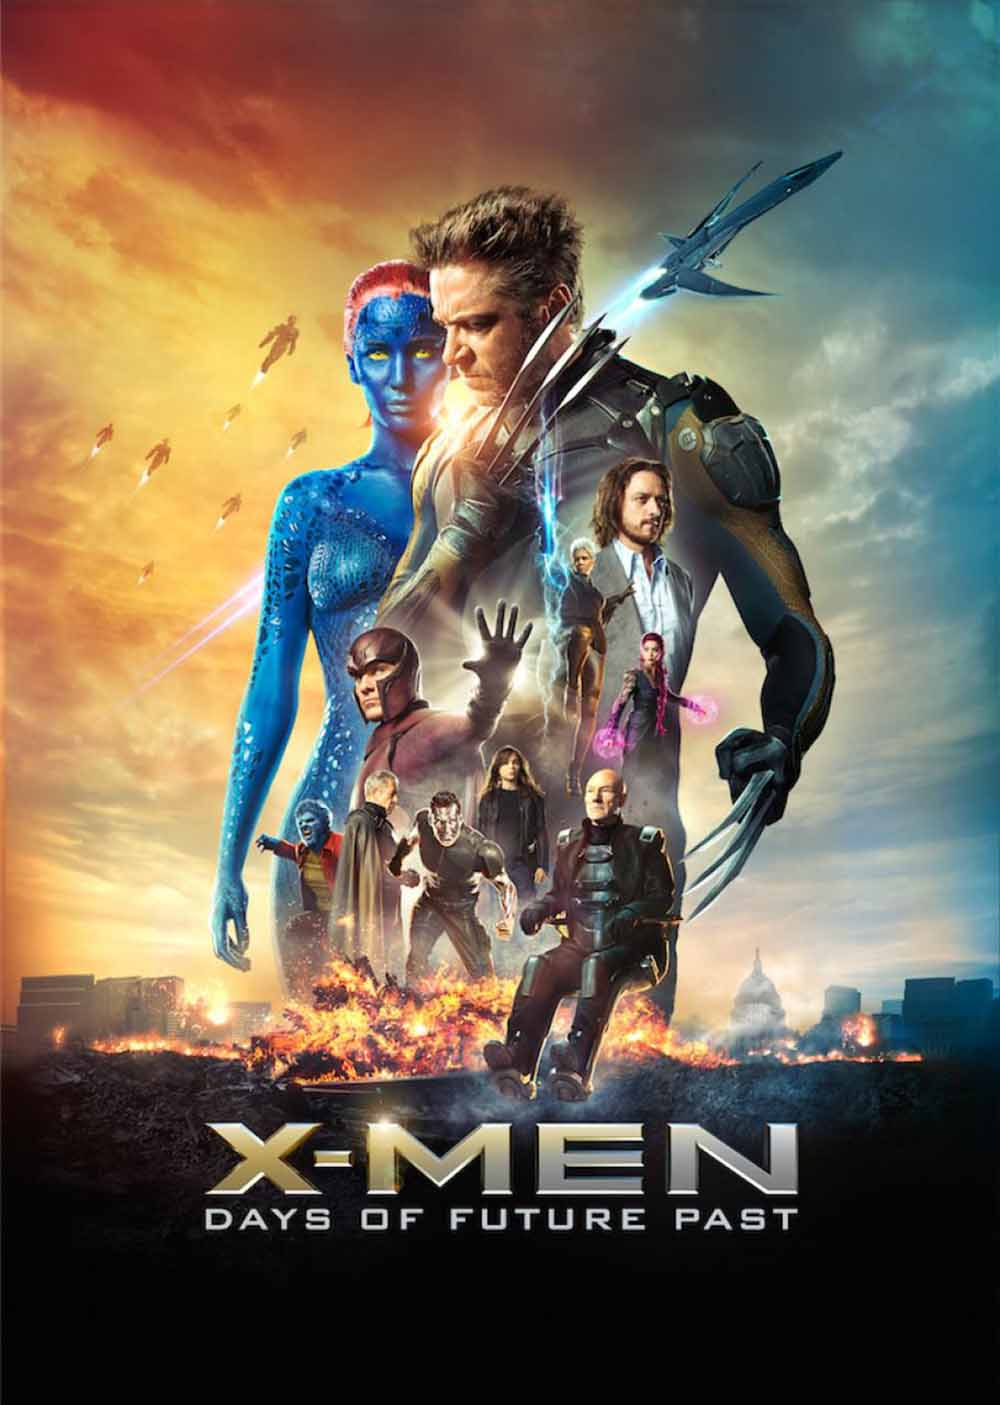 X-Men: Days of Future Past (2014) Full Movie Poster